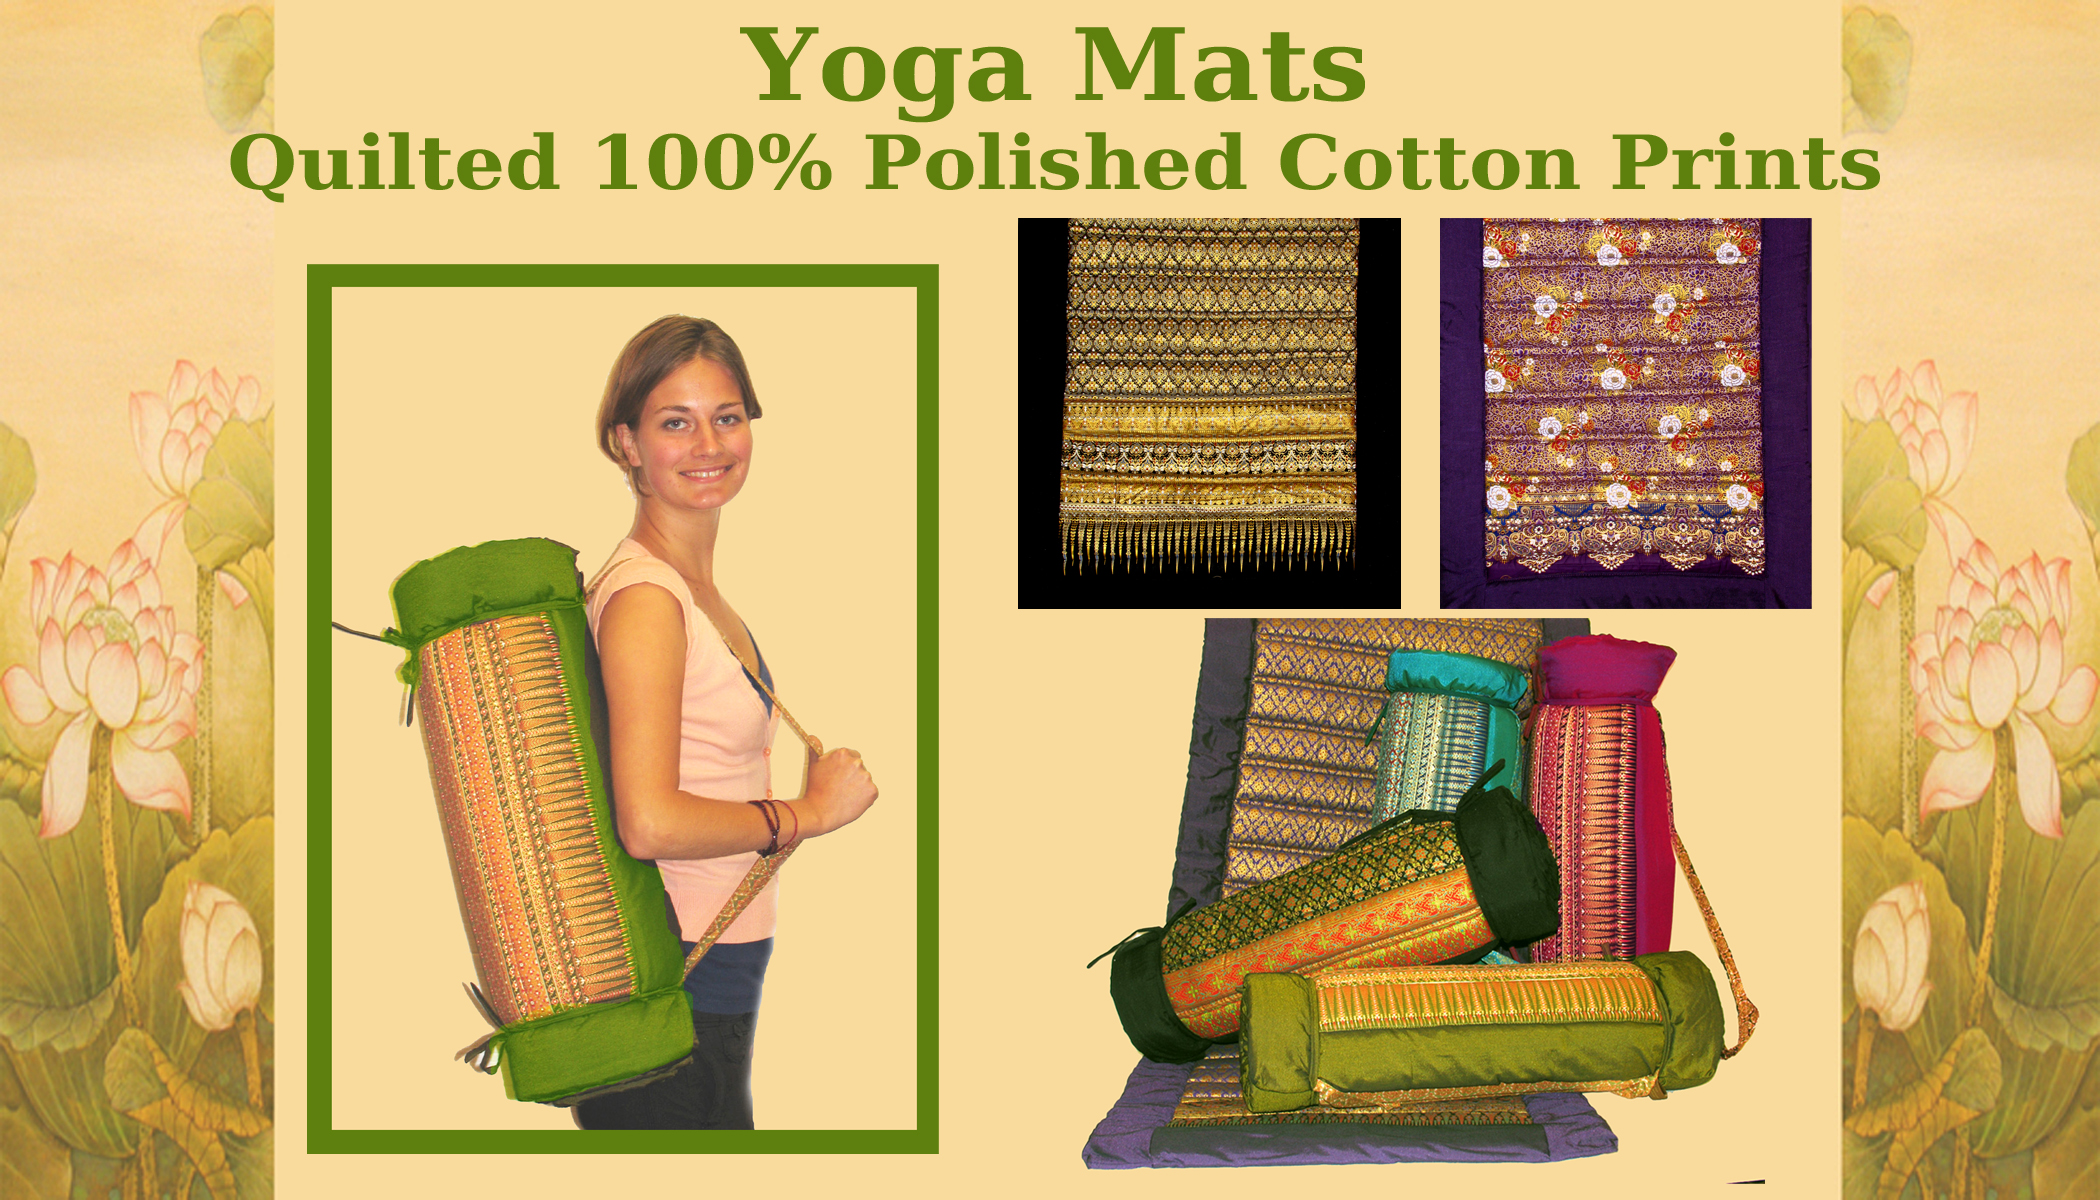 polished-cotton-yoga-mats.jpg